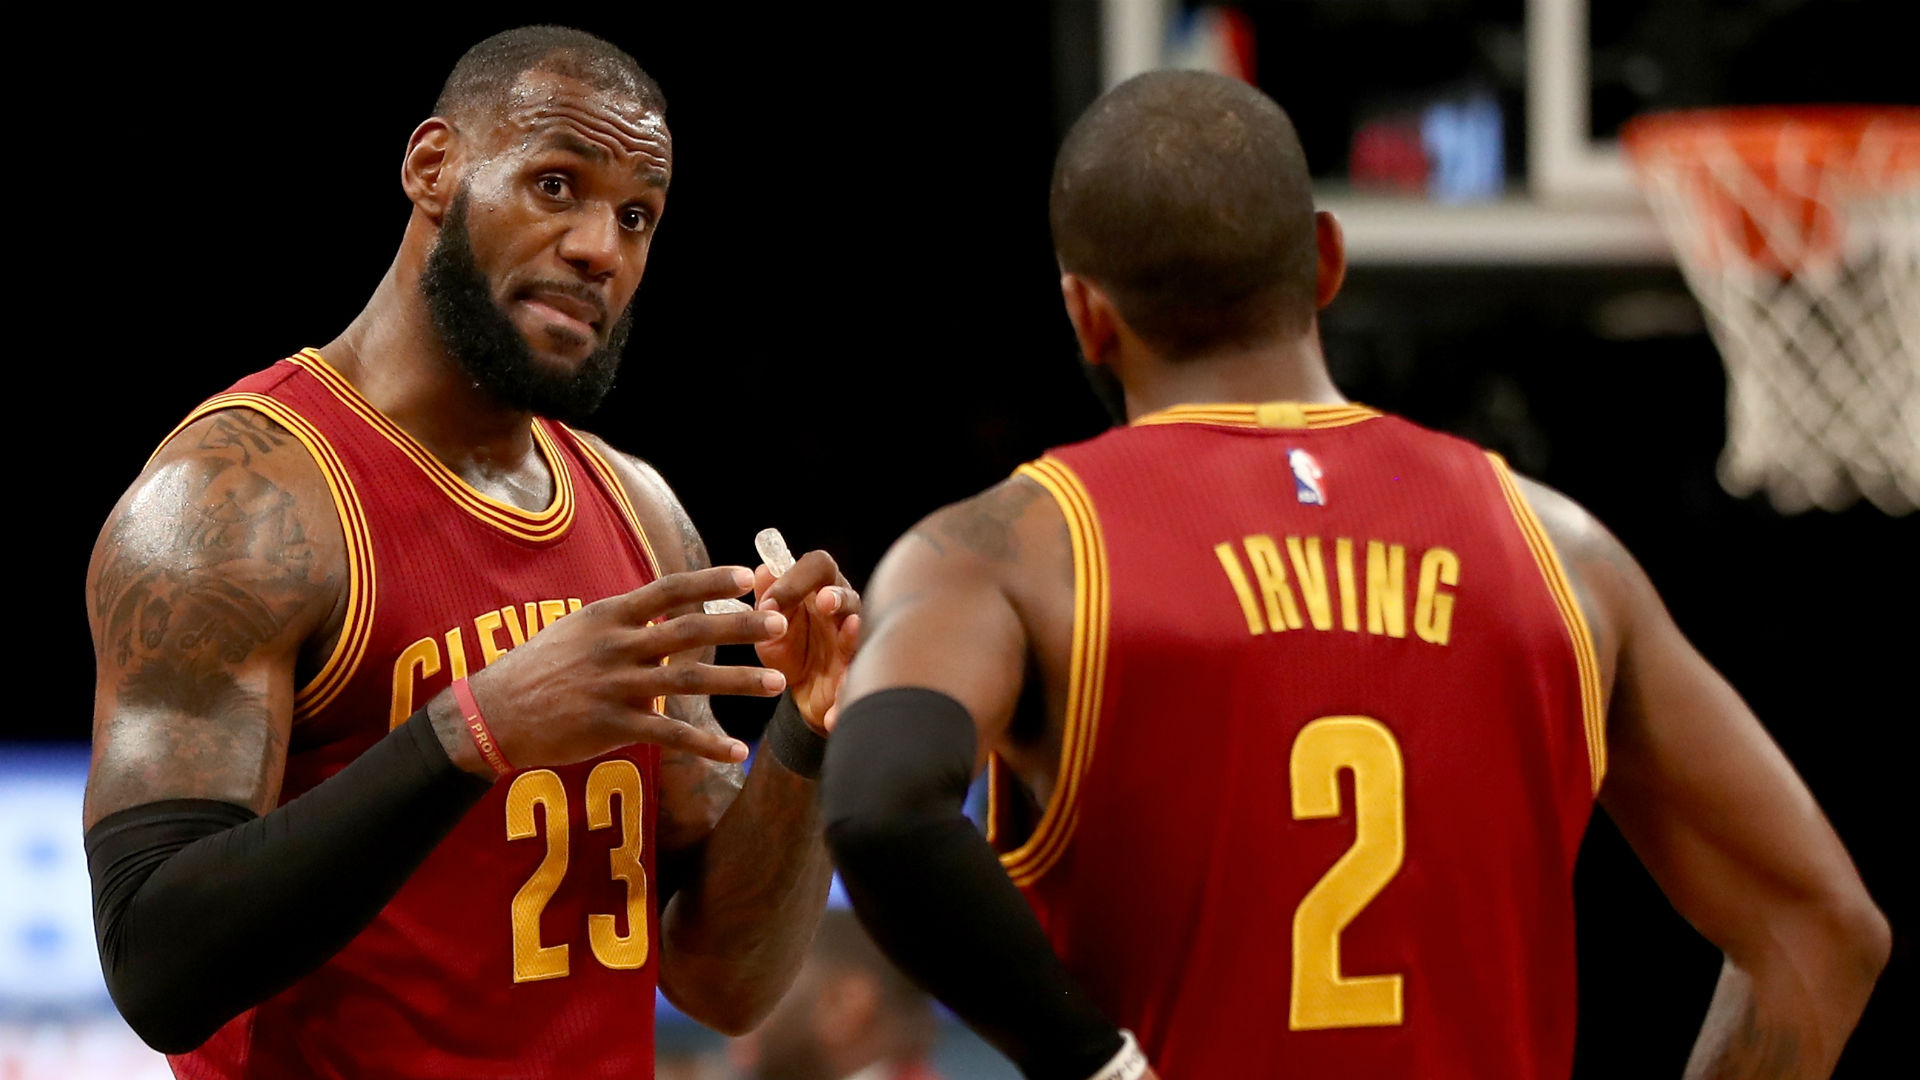 lebron-james-kyrie-irving-ftr-082317.jpg